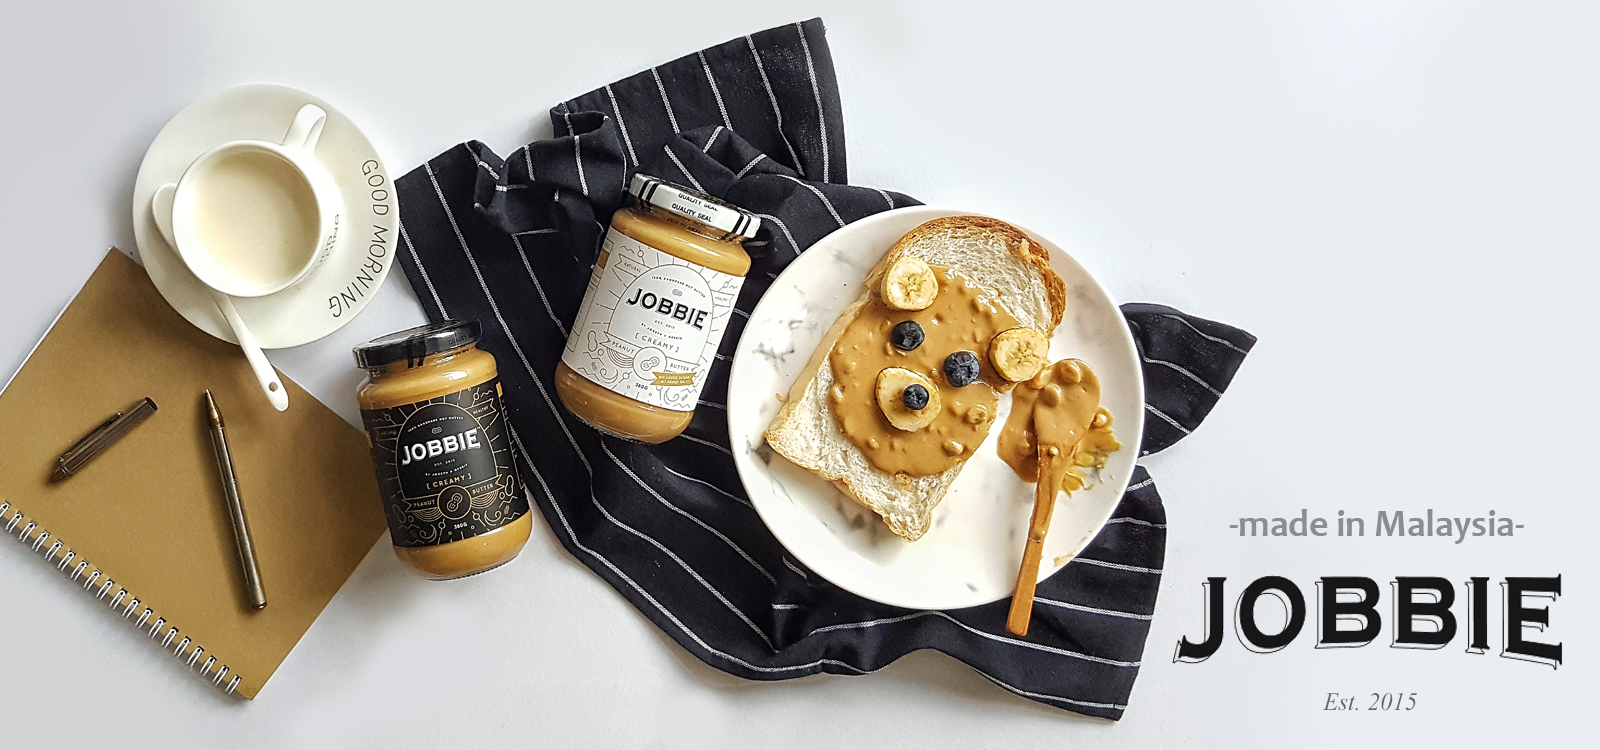 Jobbie Nut Butter made in Malaysia